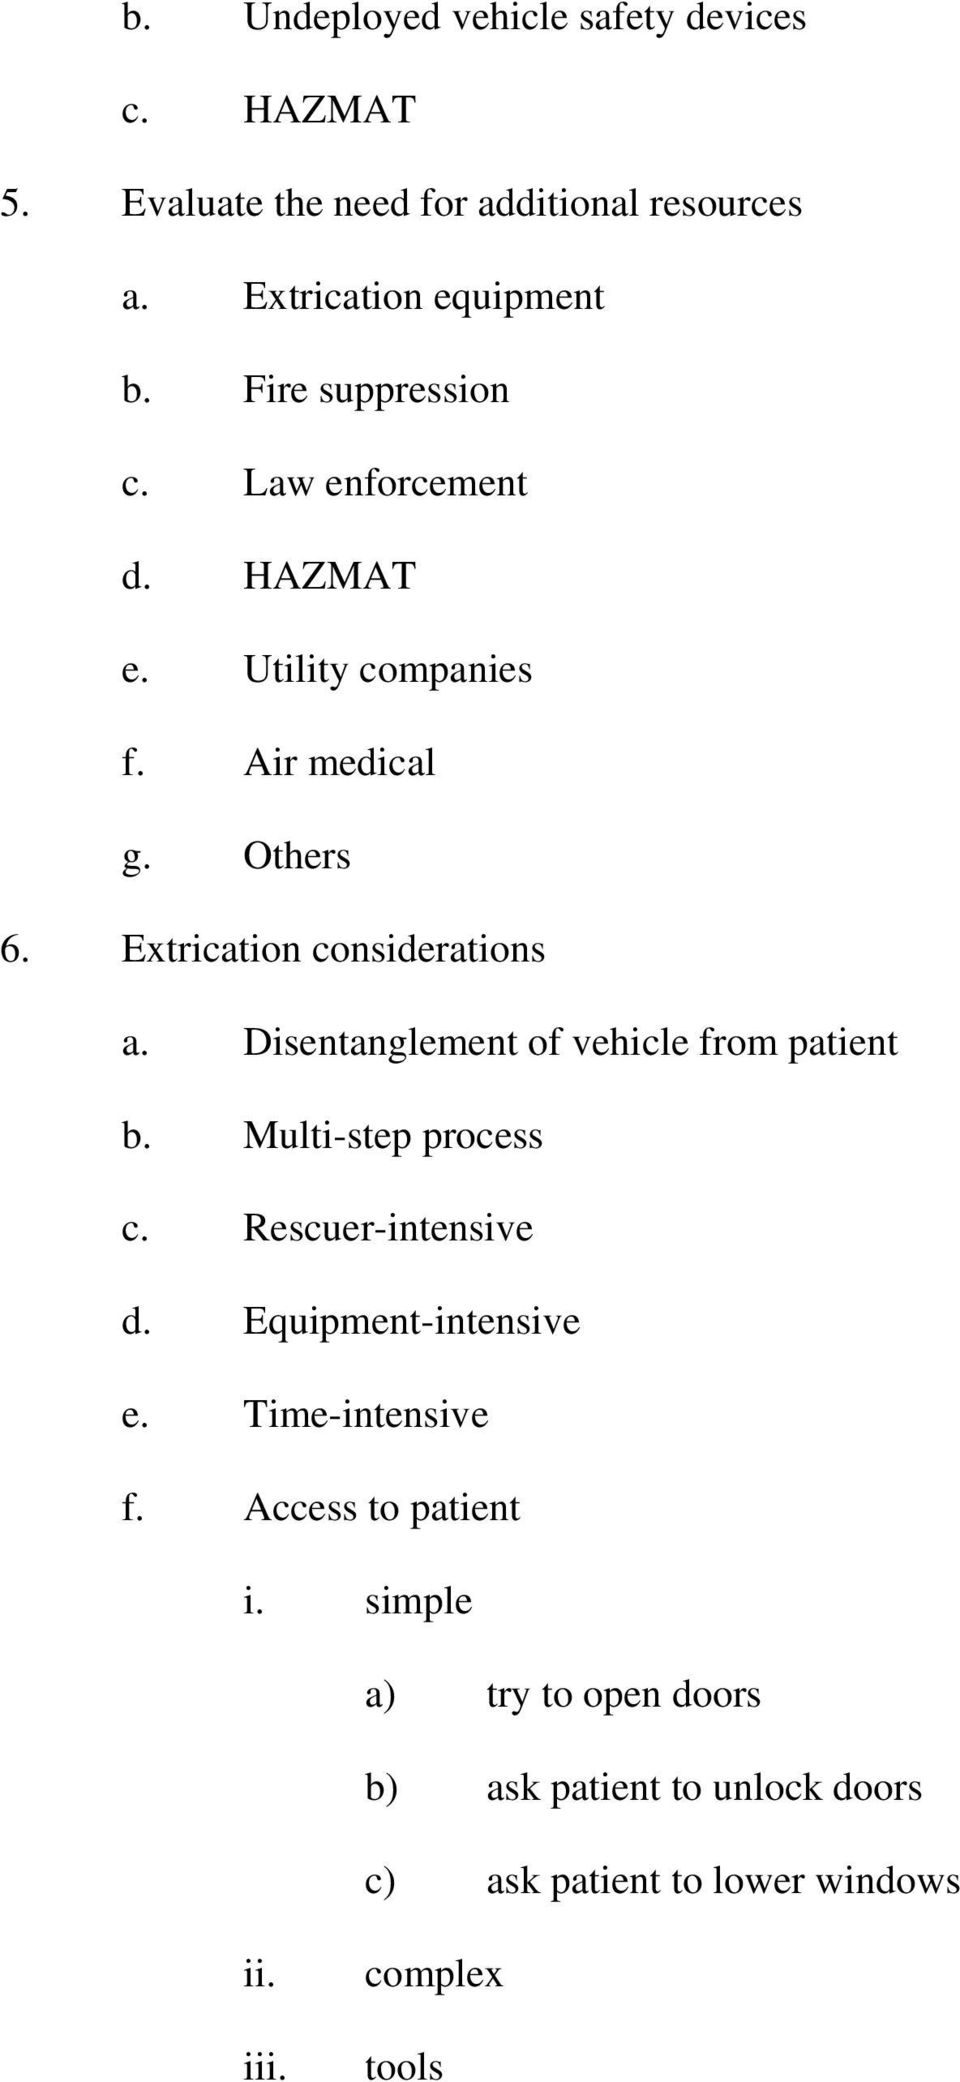 Disentanglement of vehicle from patient b. Multi-step process c. Rescuer-intensive d. Equipment-intensive e. Time-intensive f.